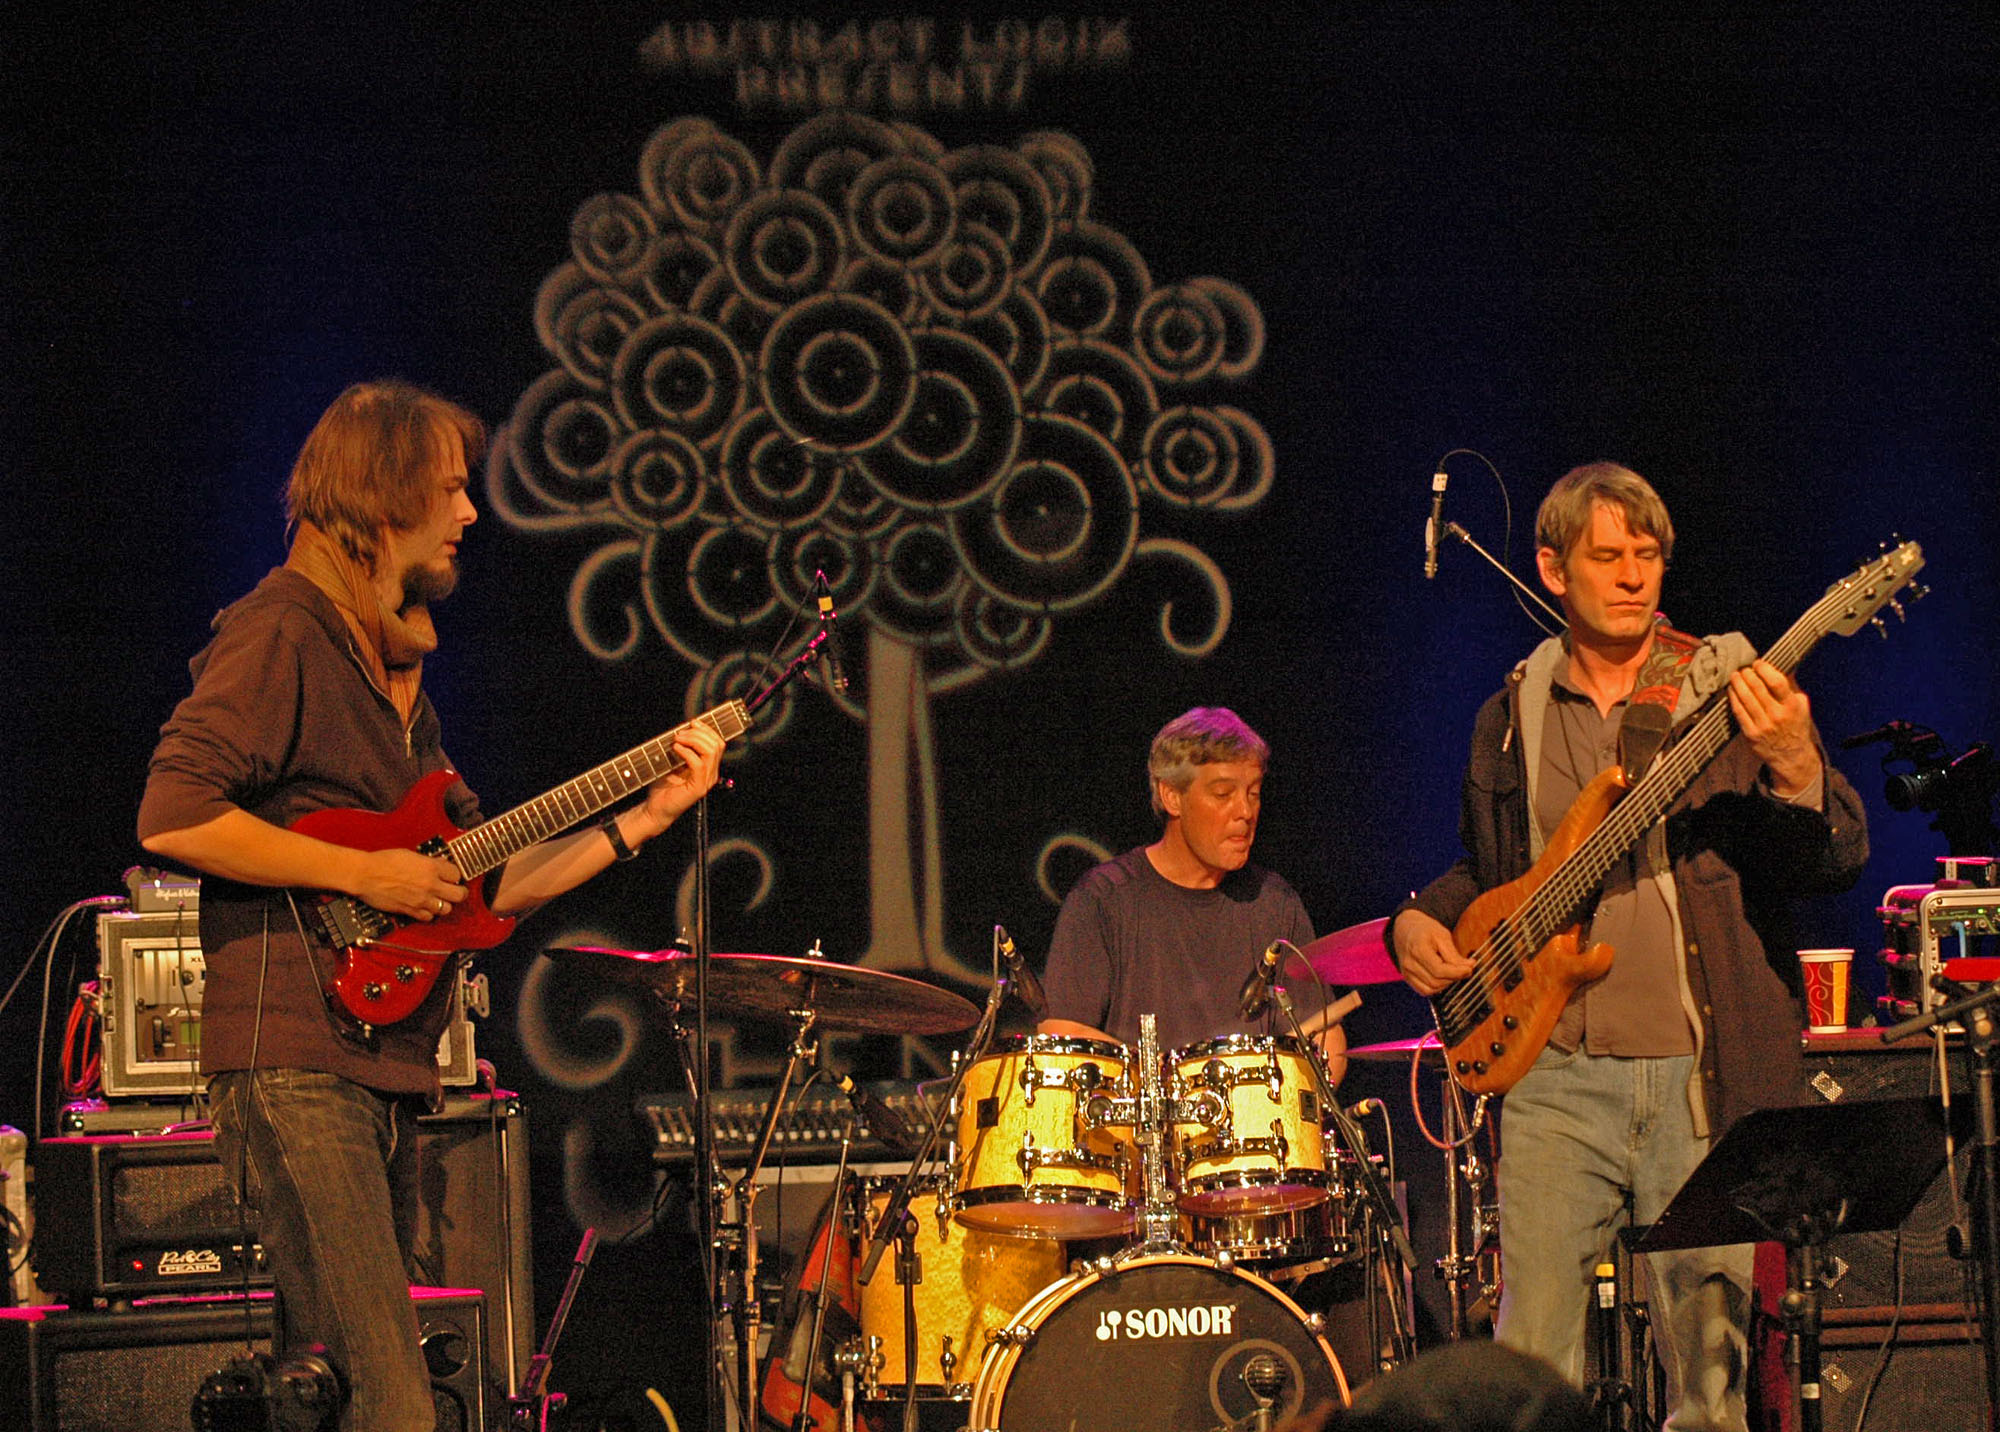 Alex Machacek, Jeff Sipe and Neal Fountain, Performing at the New Universe Music Festival 2010